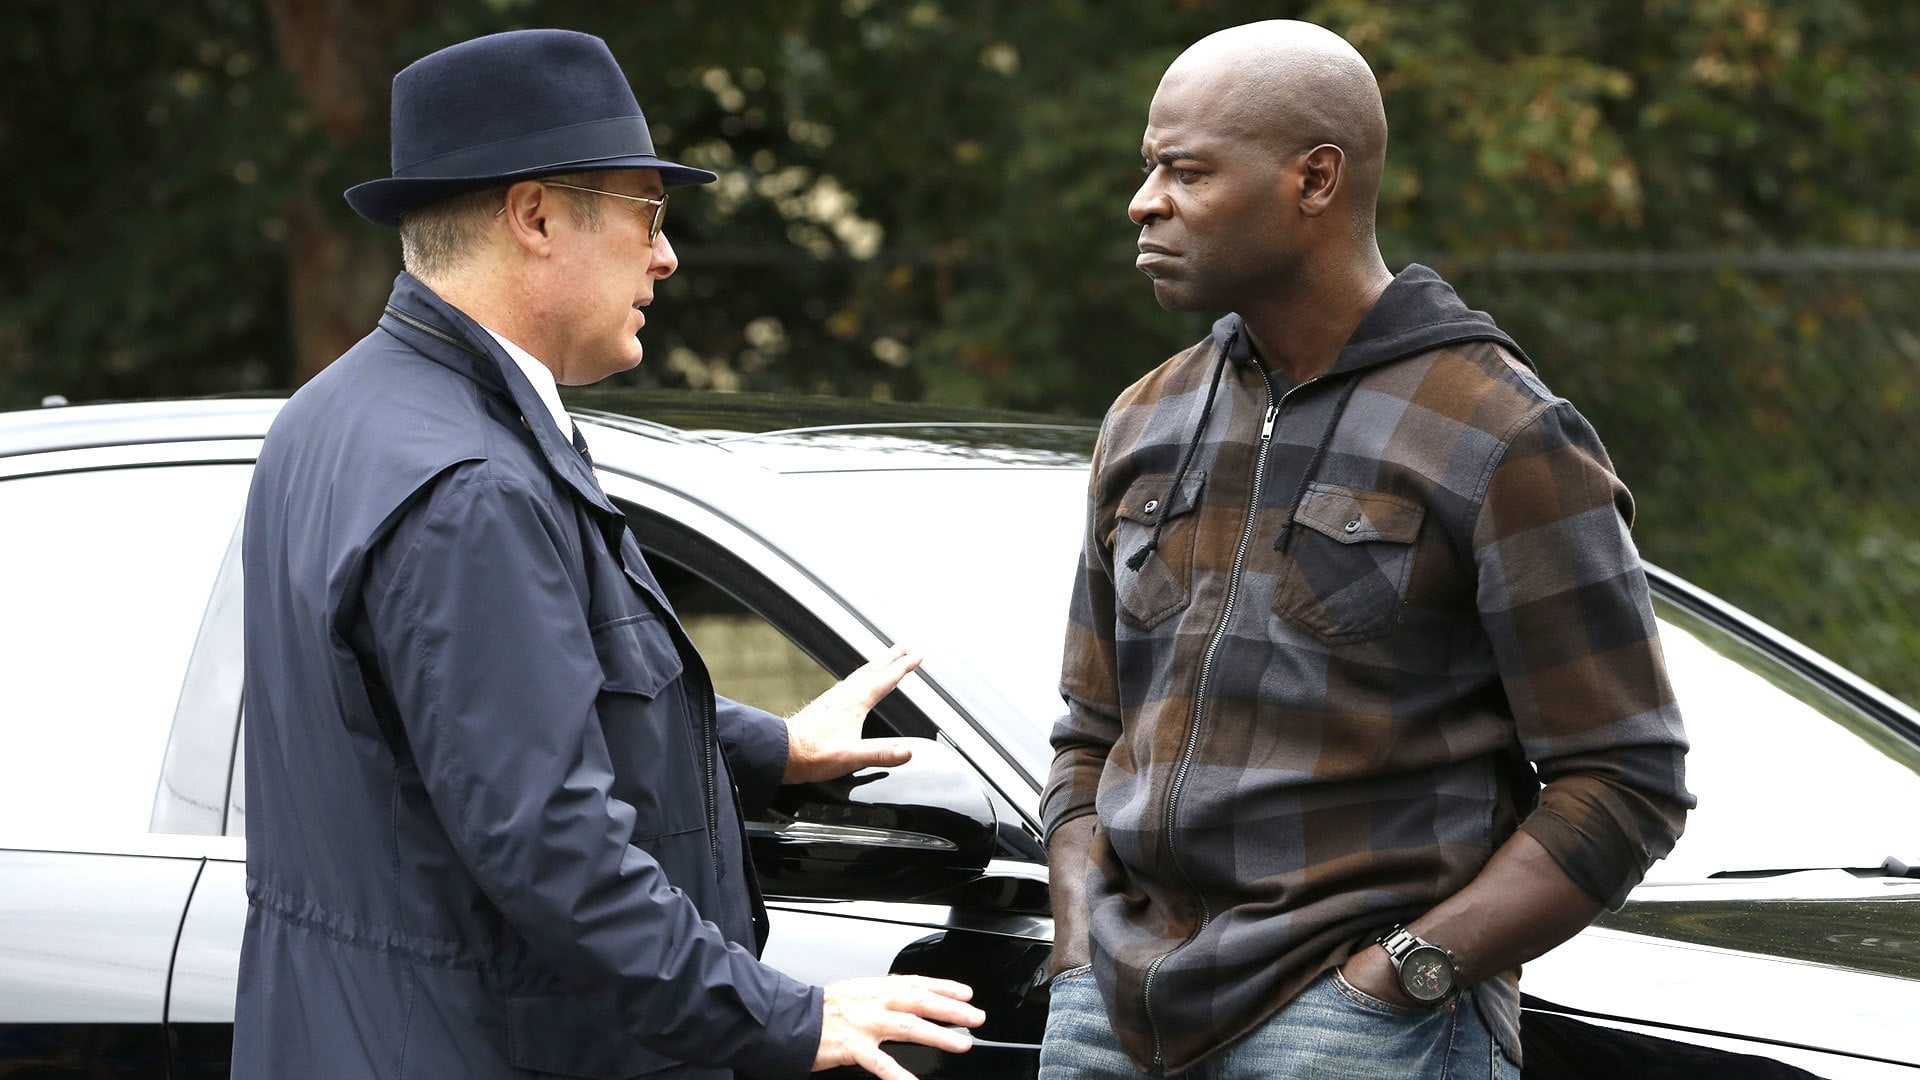 The Blacklist - Season 5 Episode 7 : The Kilgannon Corporation